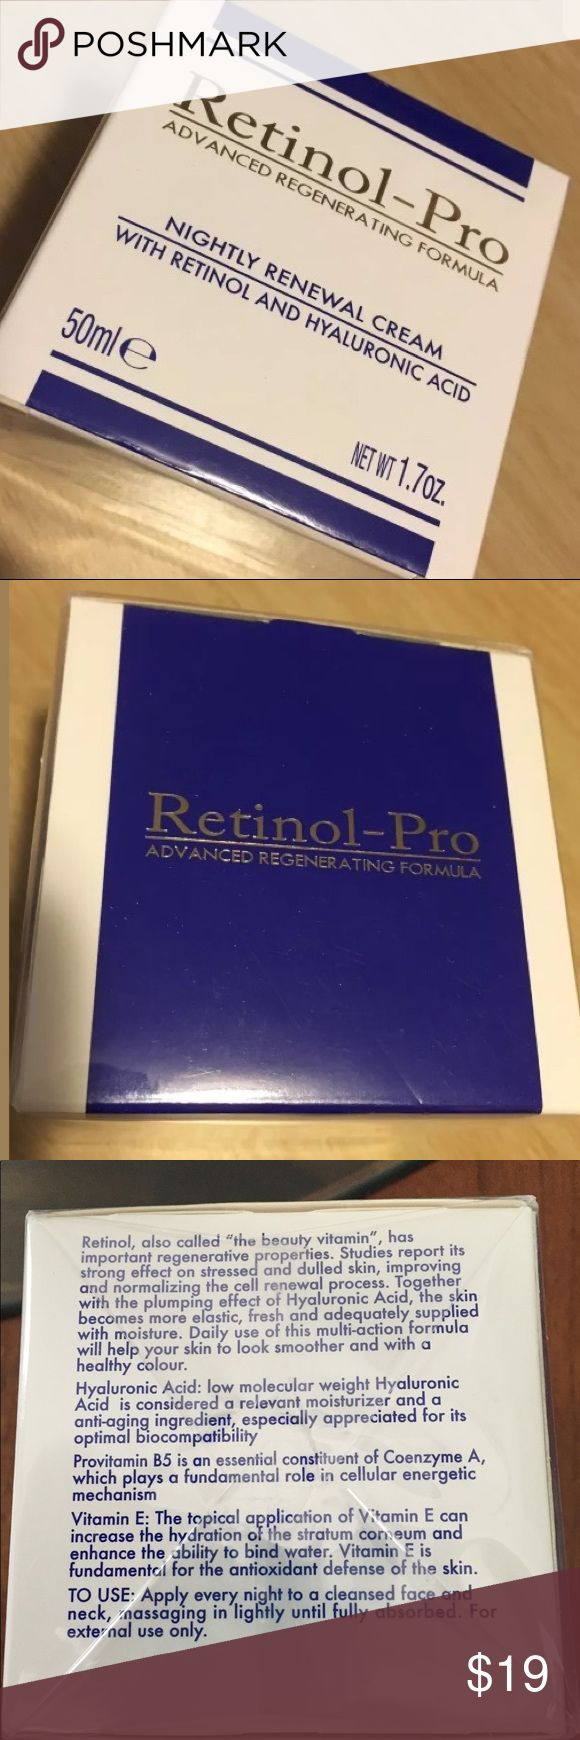 NWT Retinol-Pro Nightly Renewal Face cream New with tags Retinol-Pro Advanced Regeneration Formula nightly renewal cream with retinal and hyaluronic acid. Net weight 1.7 ounce. Retinol-Pro Makeup